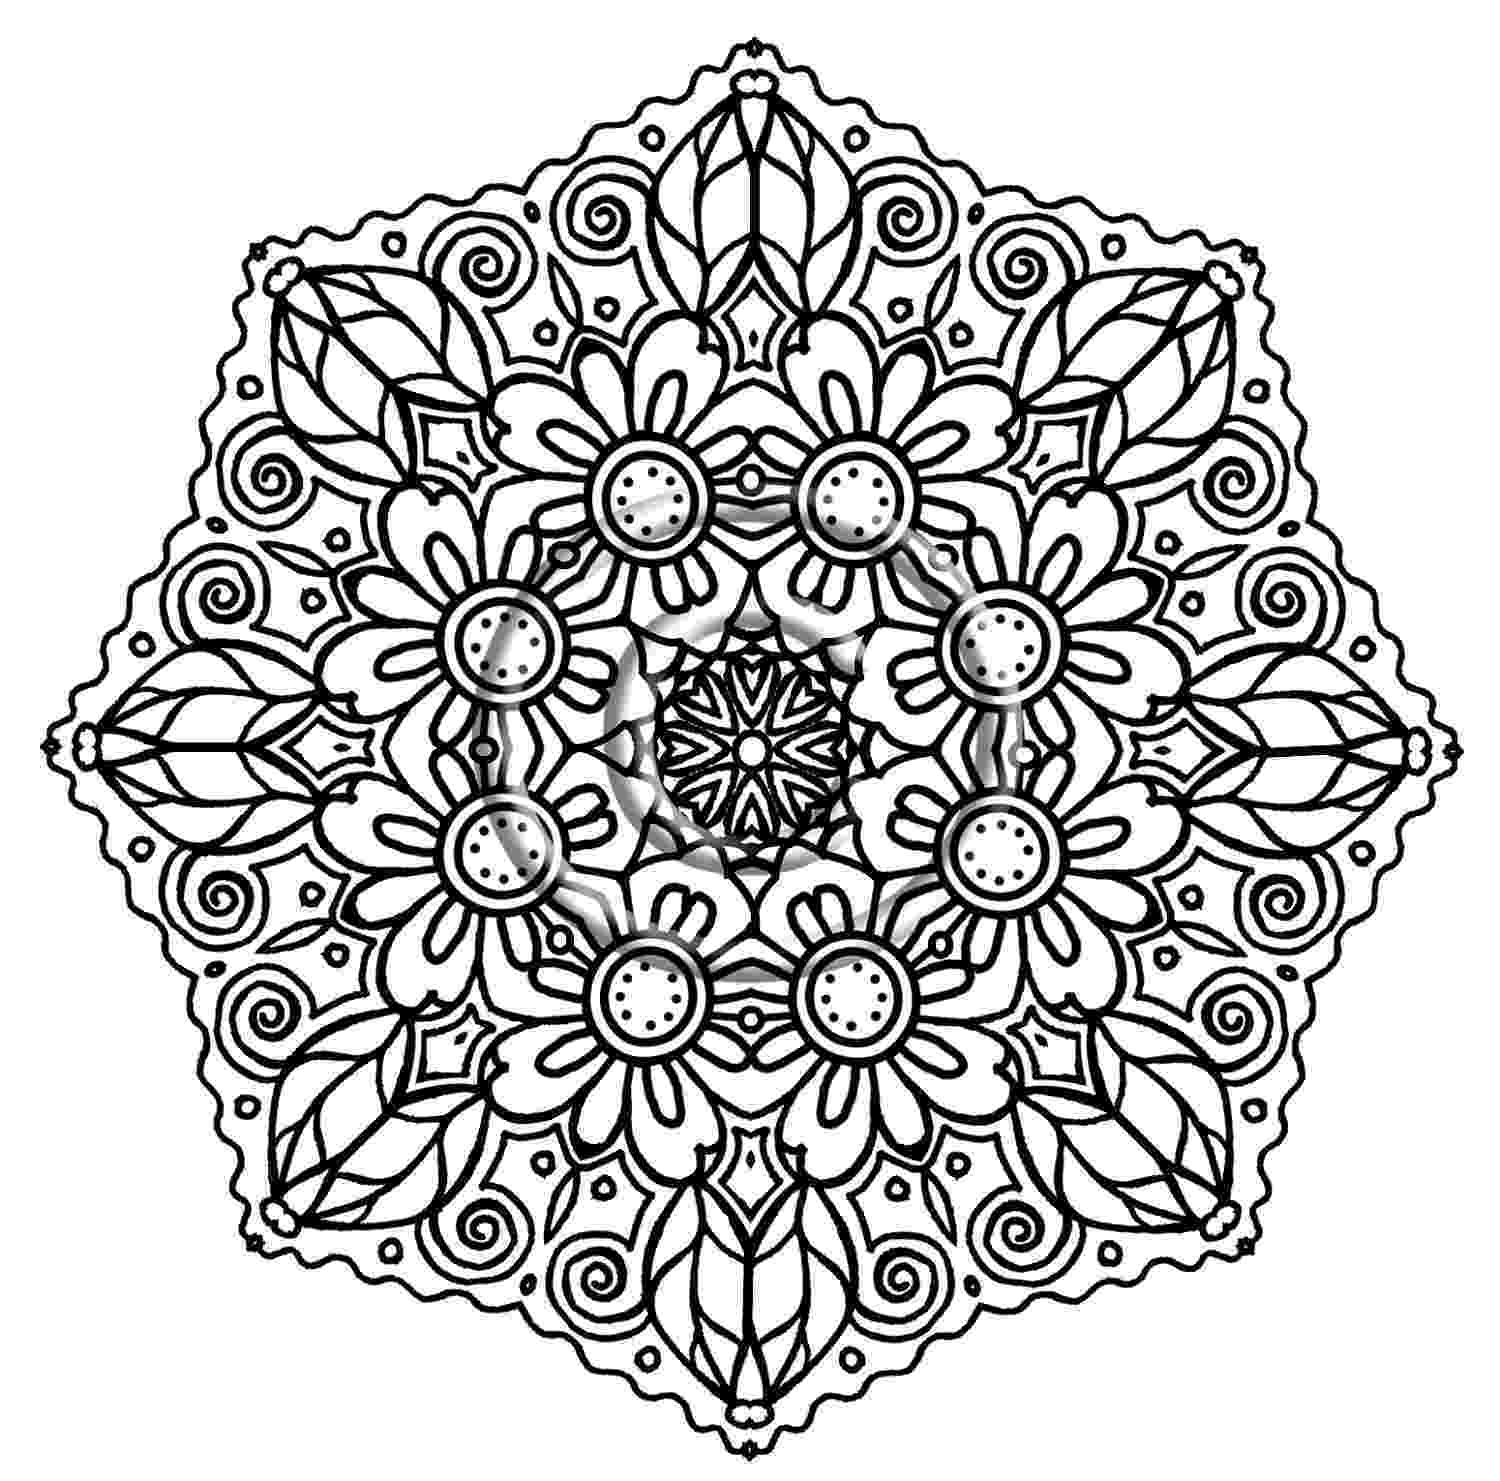 coloring page of flower free printable flower coloring pages for kids best of flower coloring page 1 2